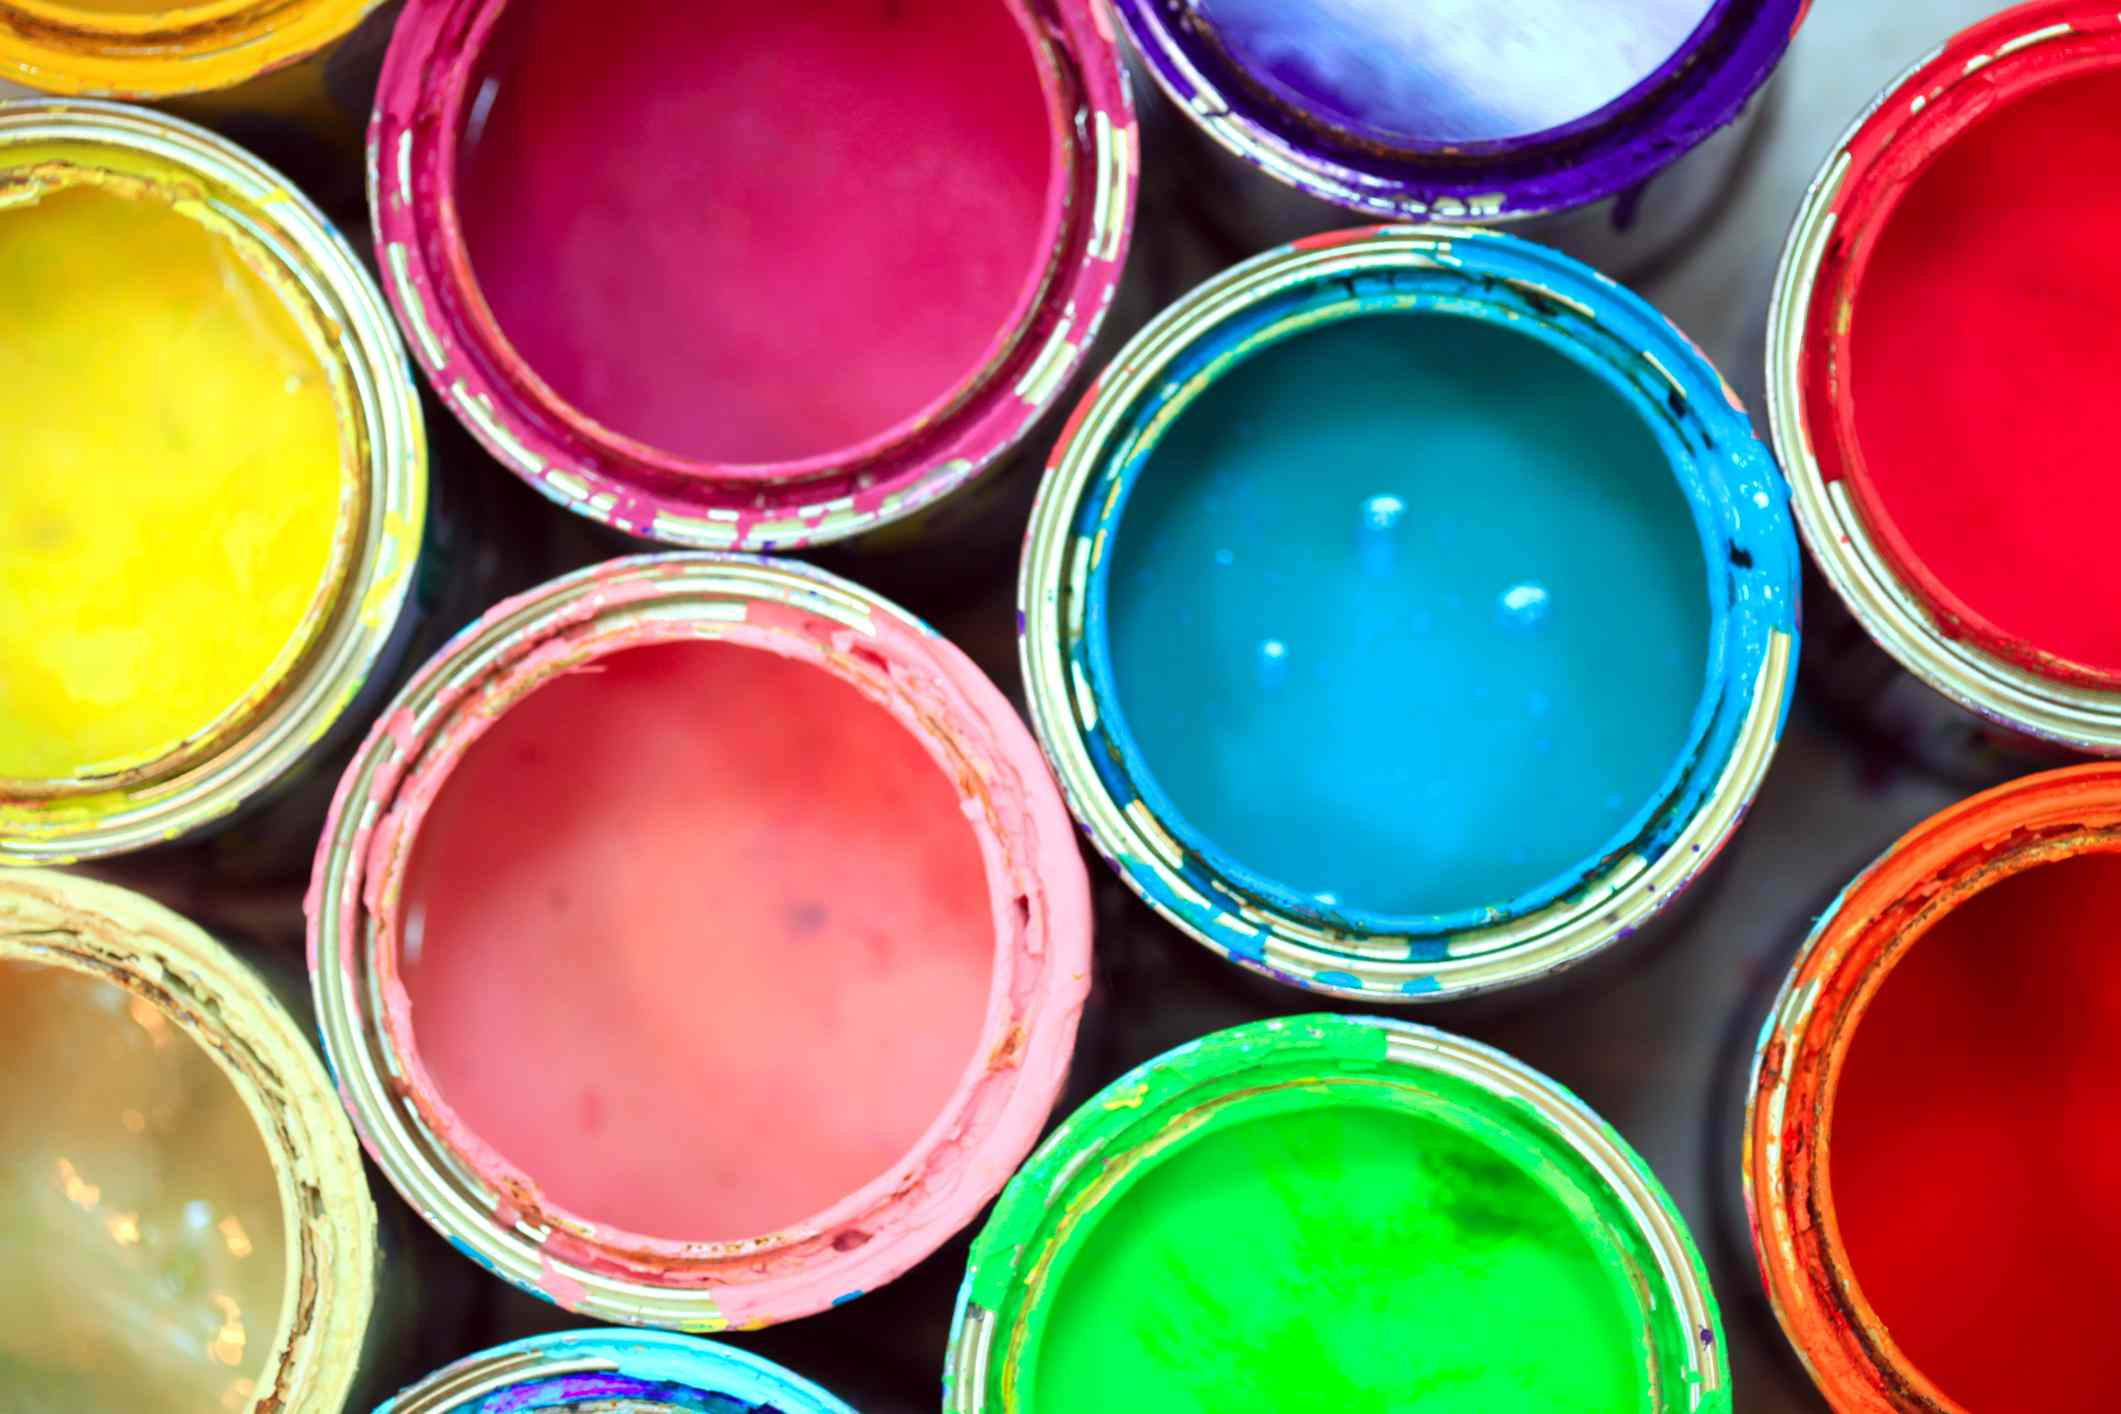 Bright cans of paint